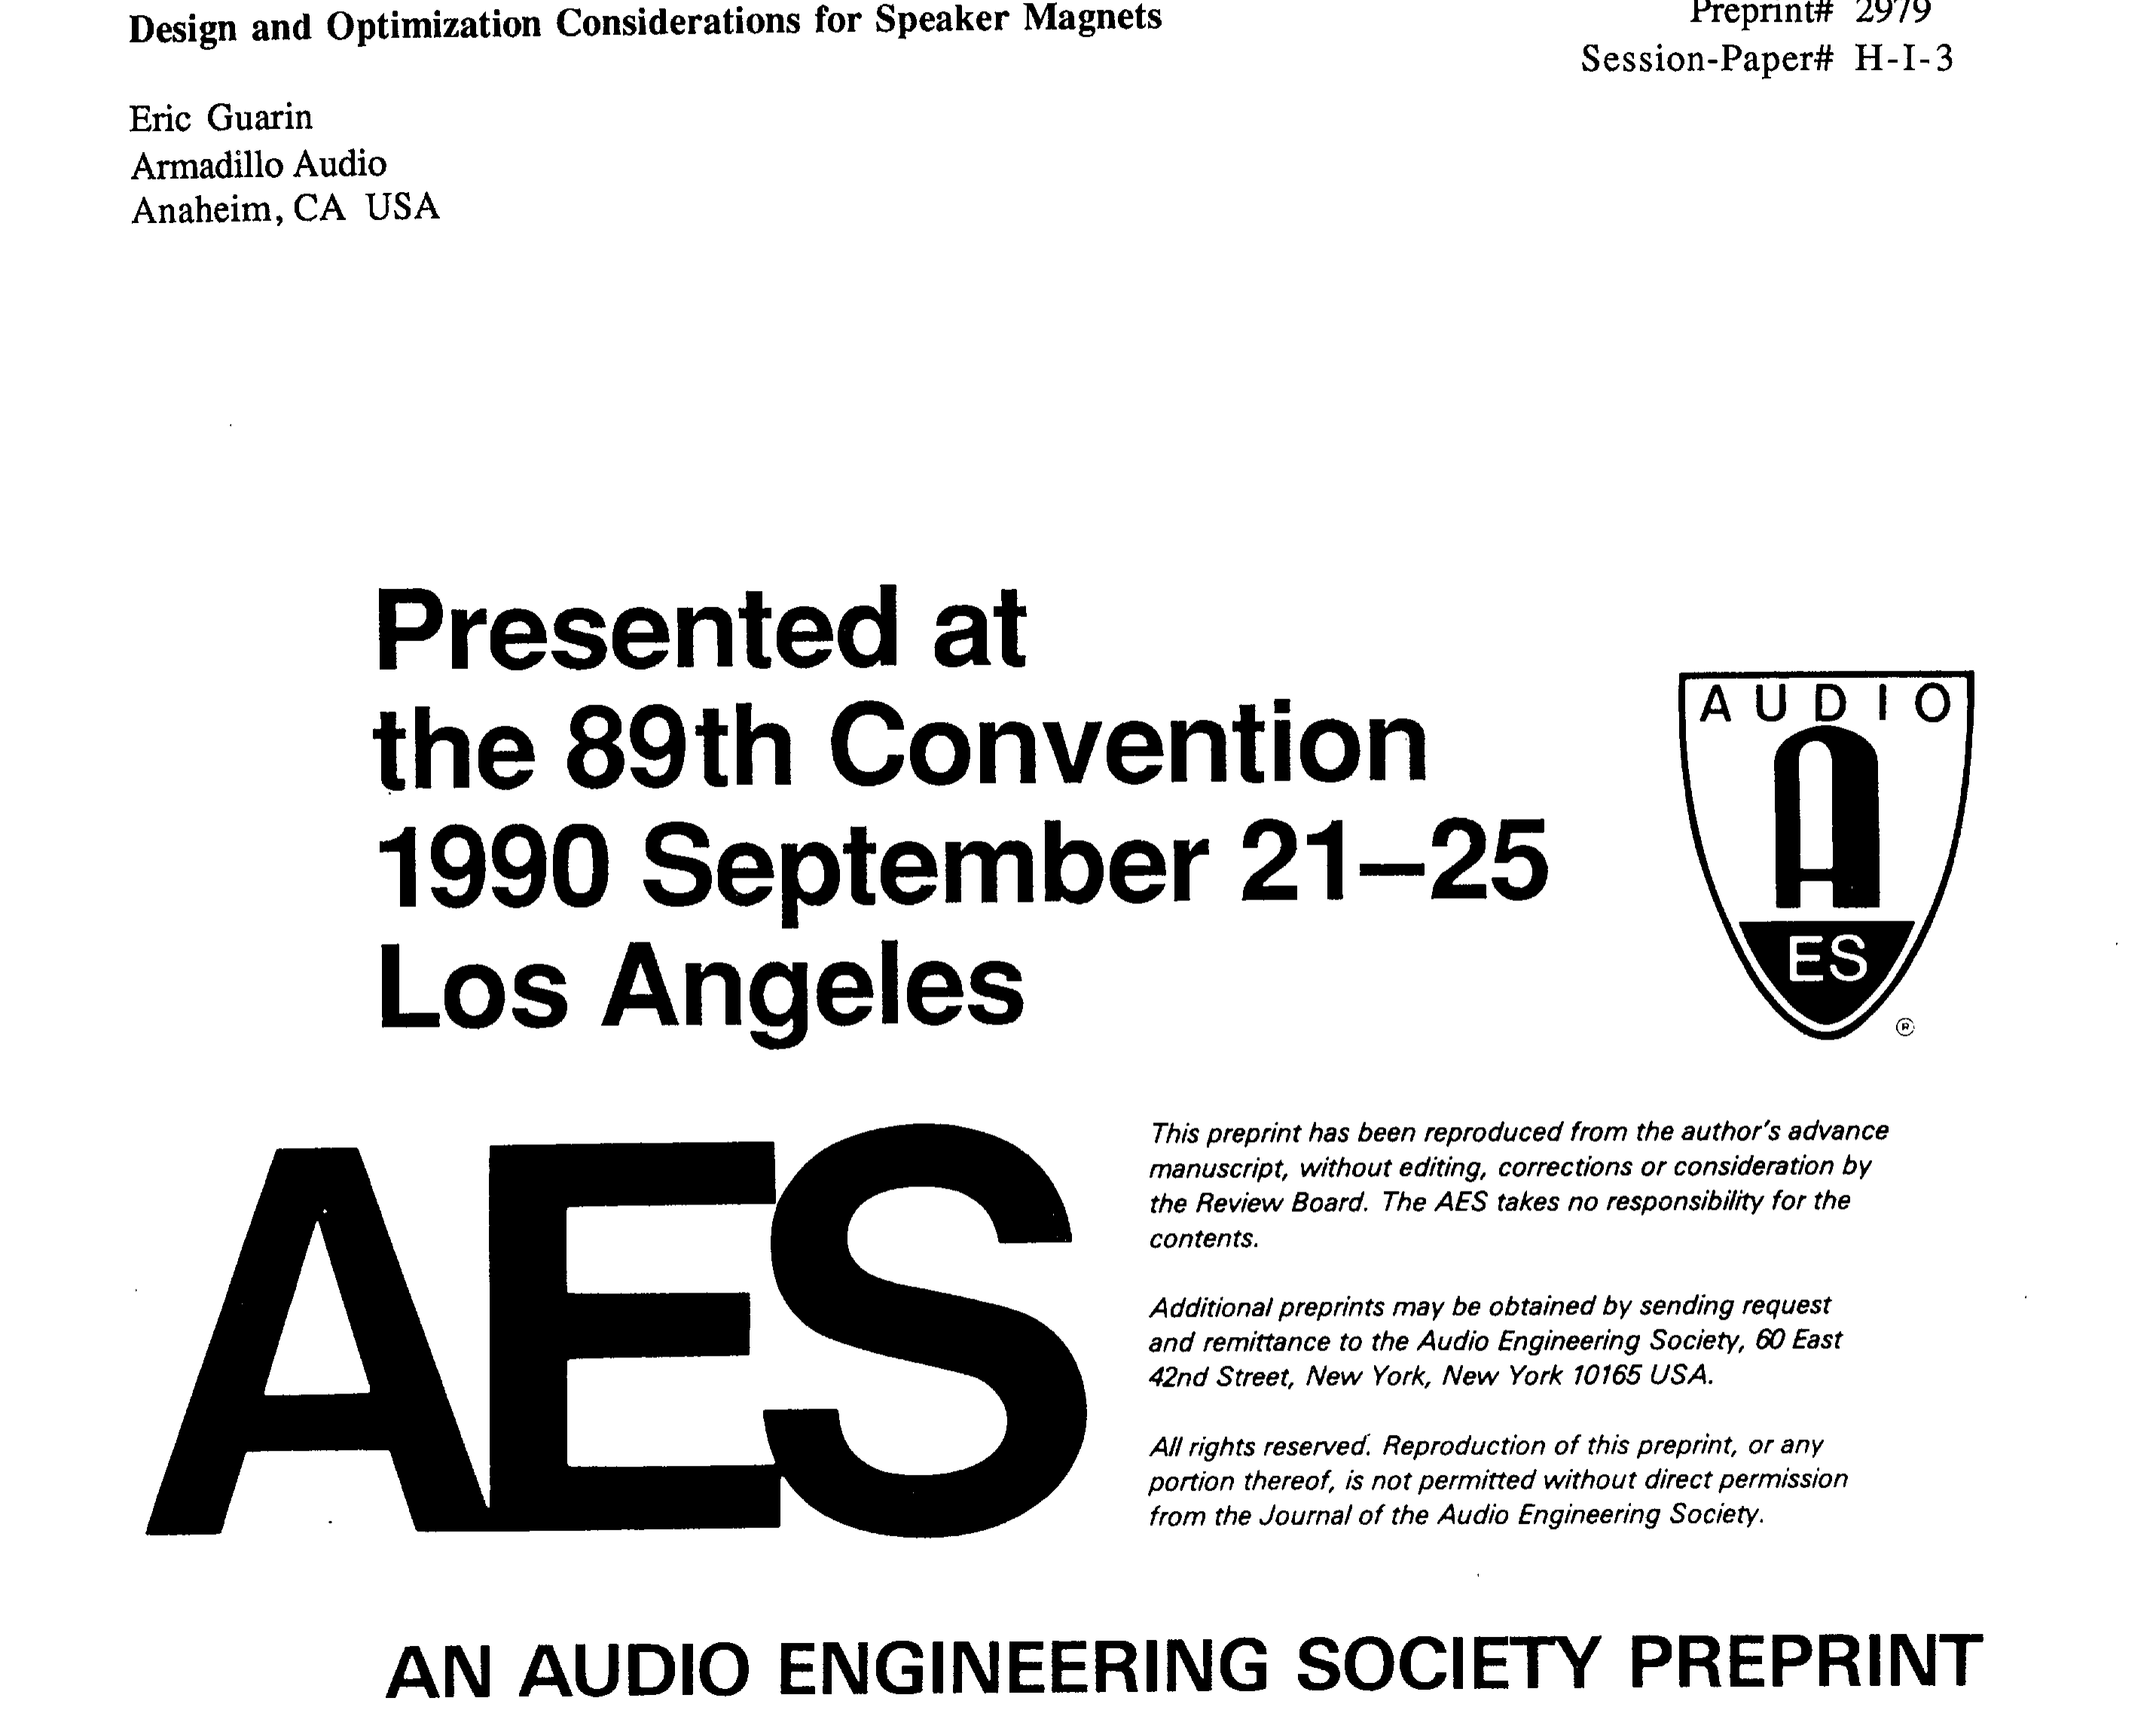 Aes E Library Design And Optimization Considerations For Speaker 1975 Mercury 850 Wiring Diagram Magnets